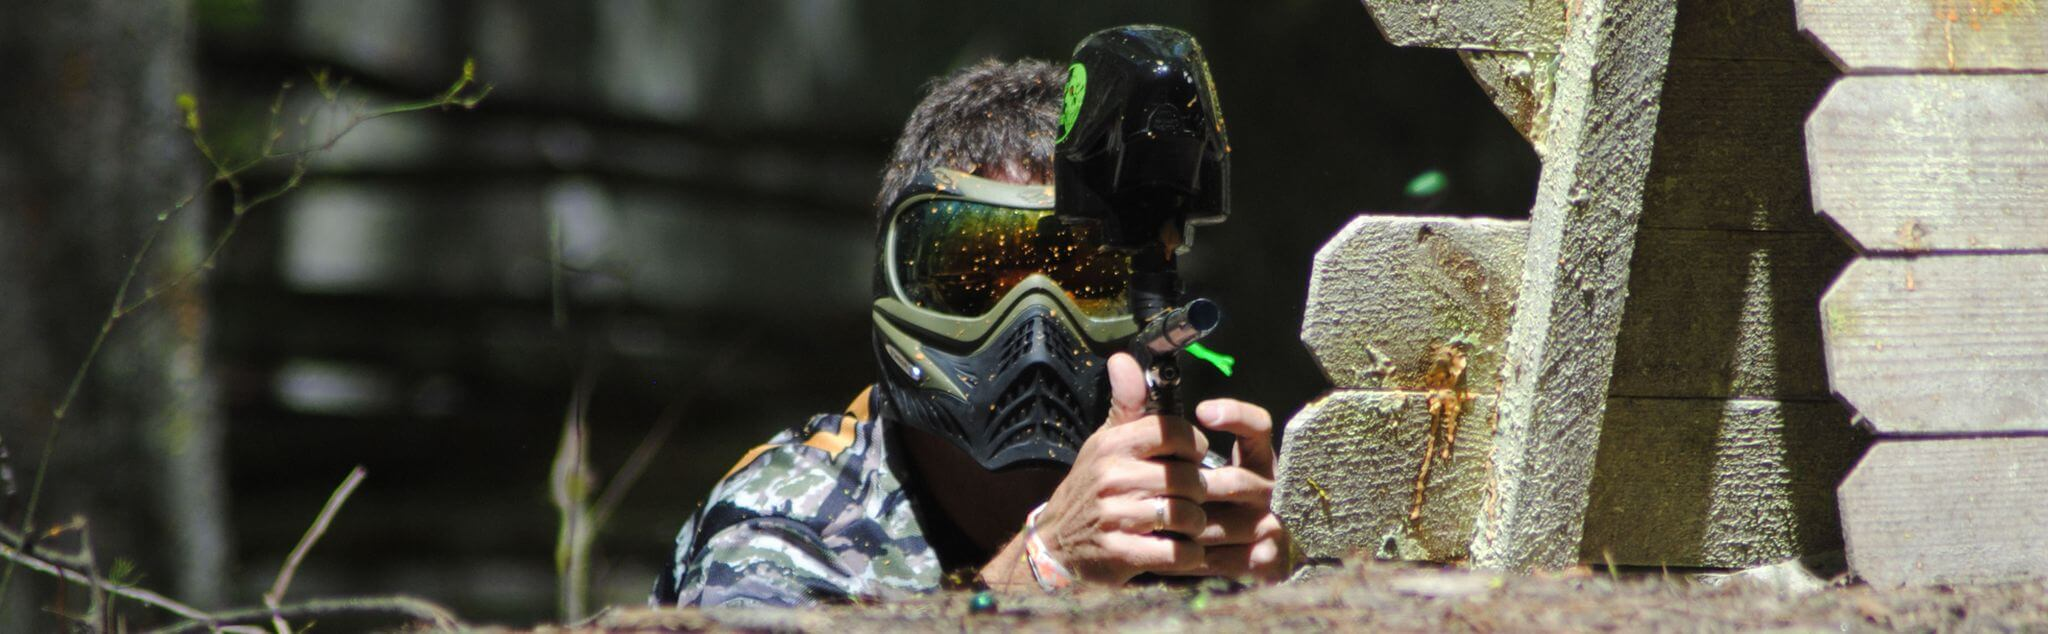 Paintball a Italia